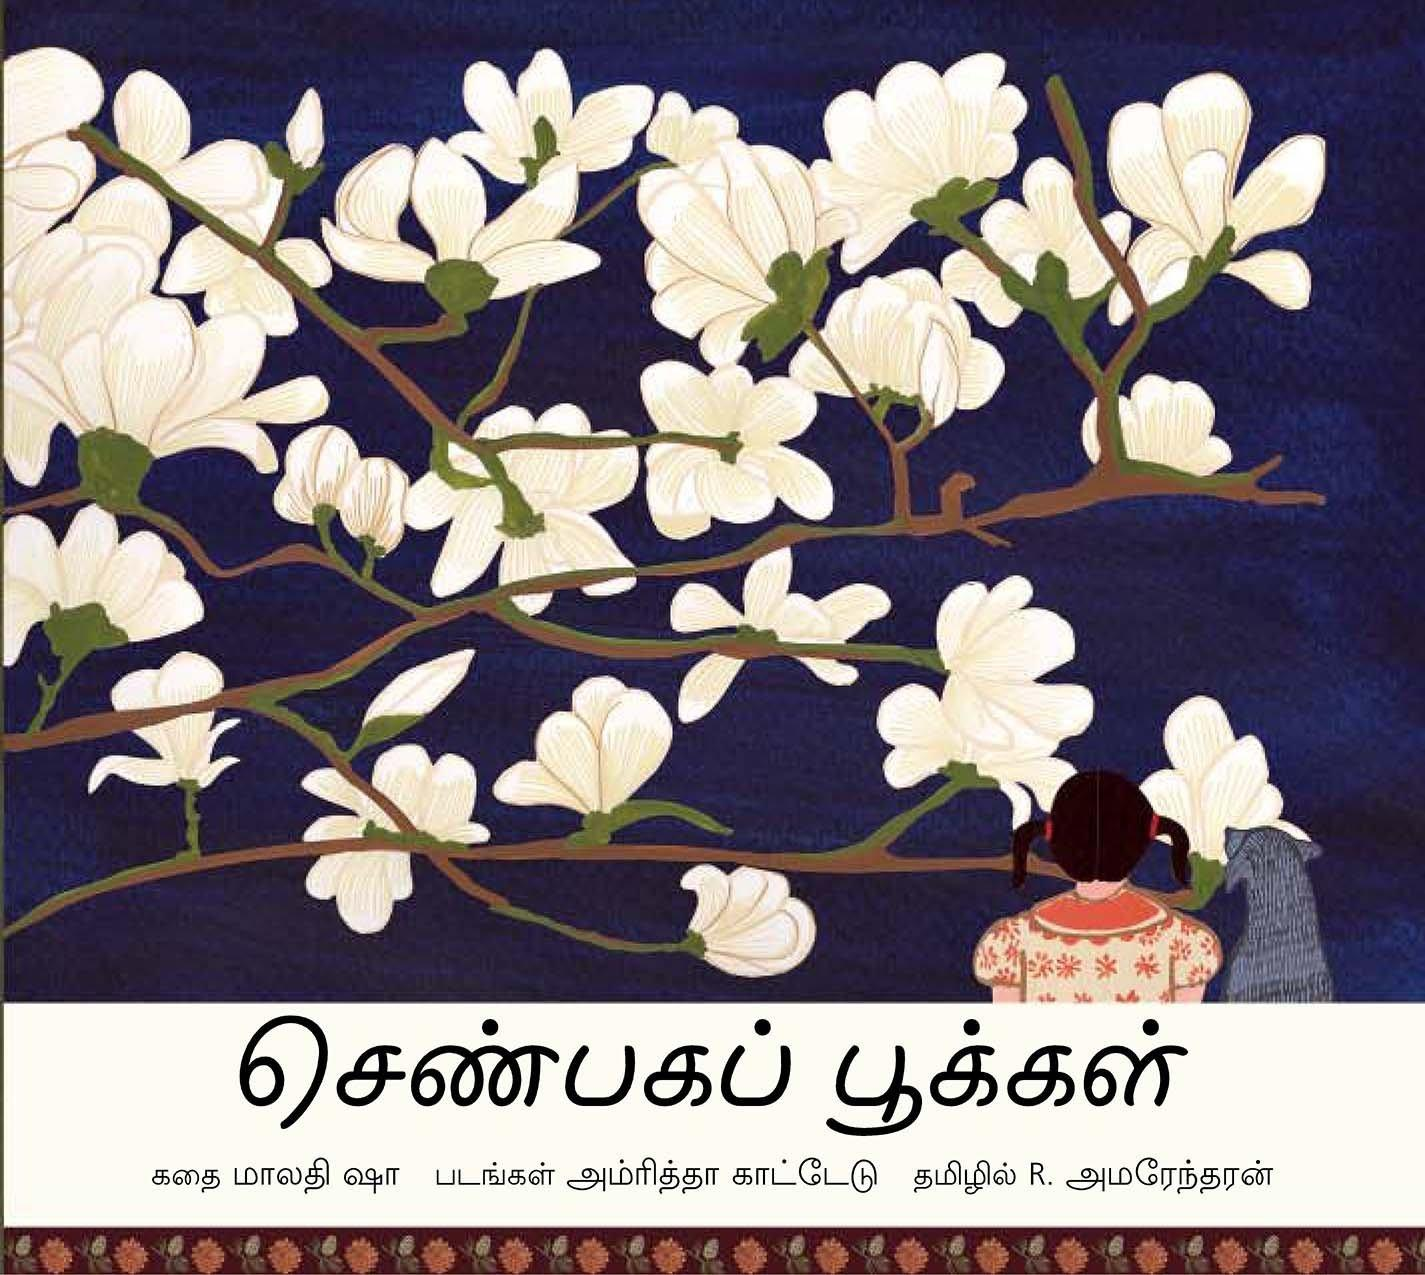 Magnolias/Shembaga Pookkal (Tamil) Picture Books Age_5+ ISBN: 9789350460795